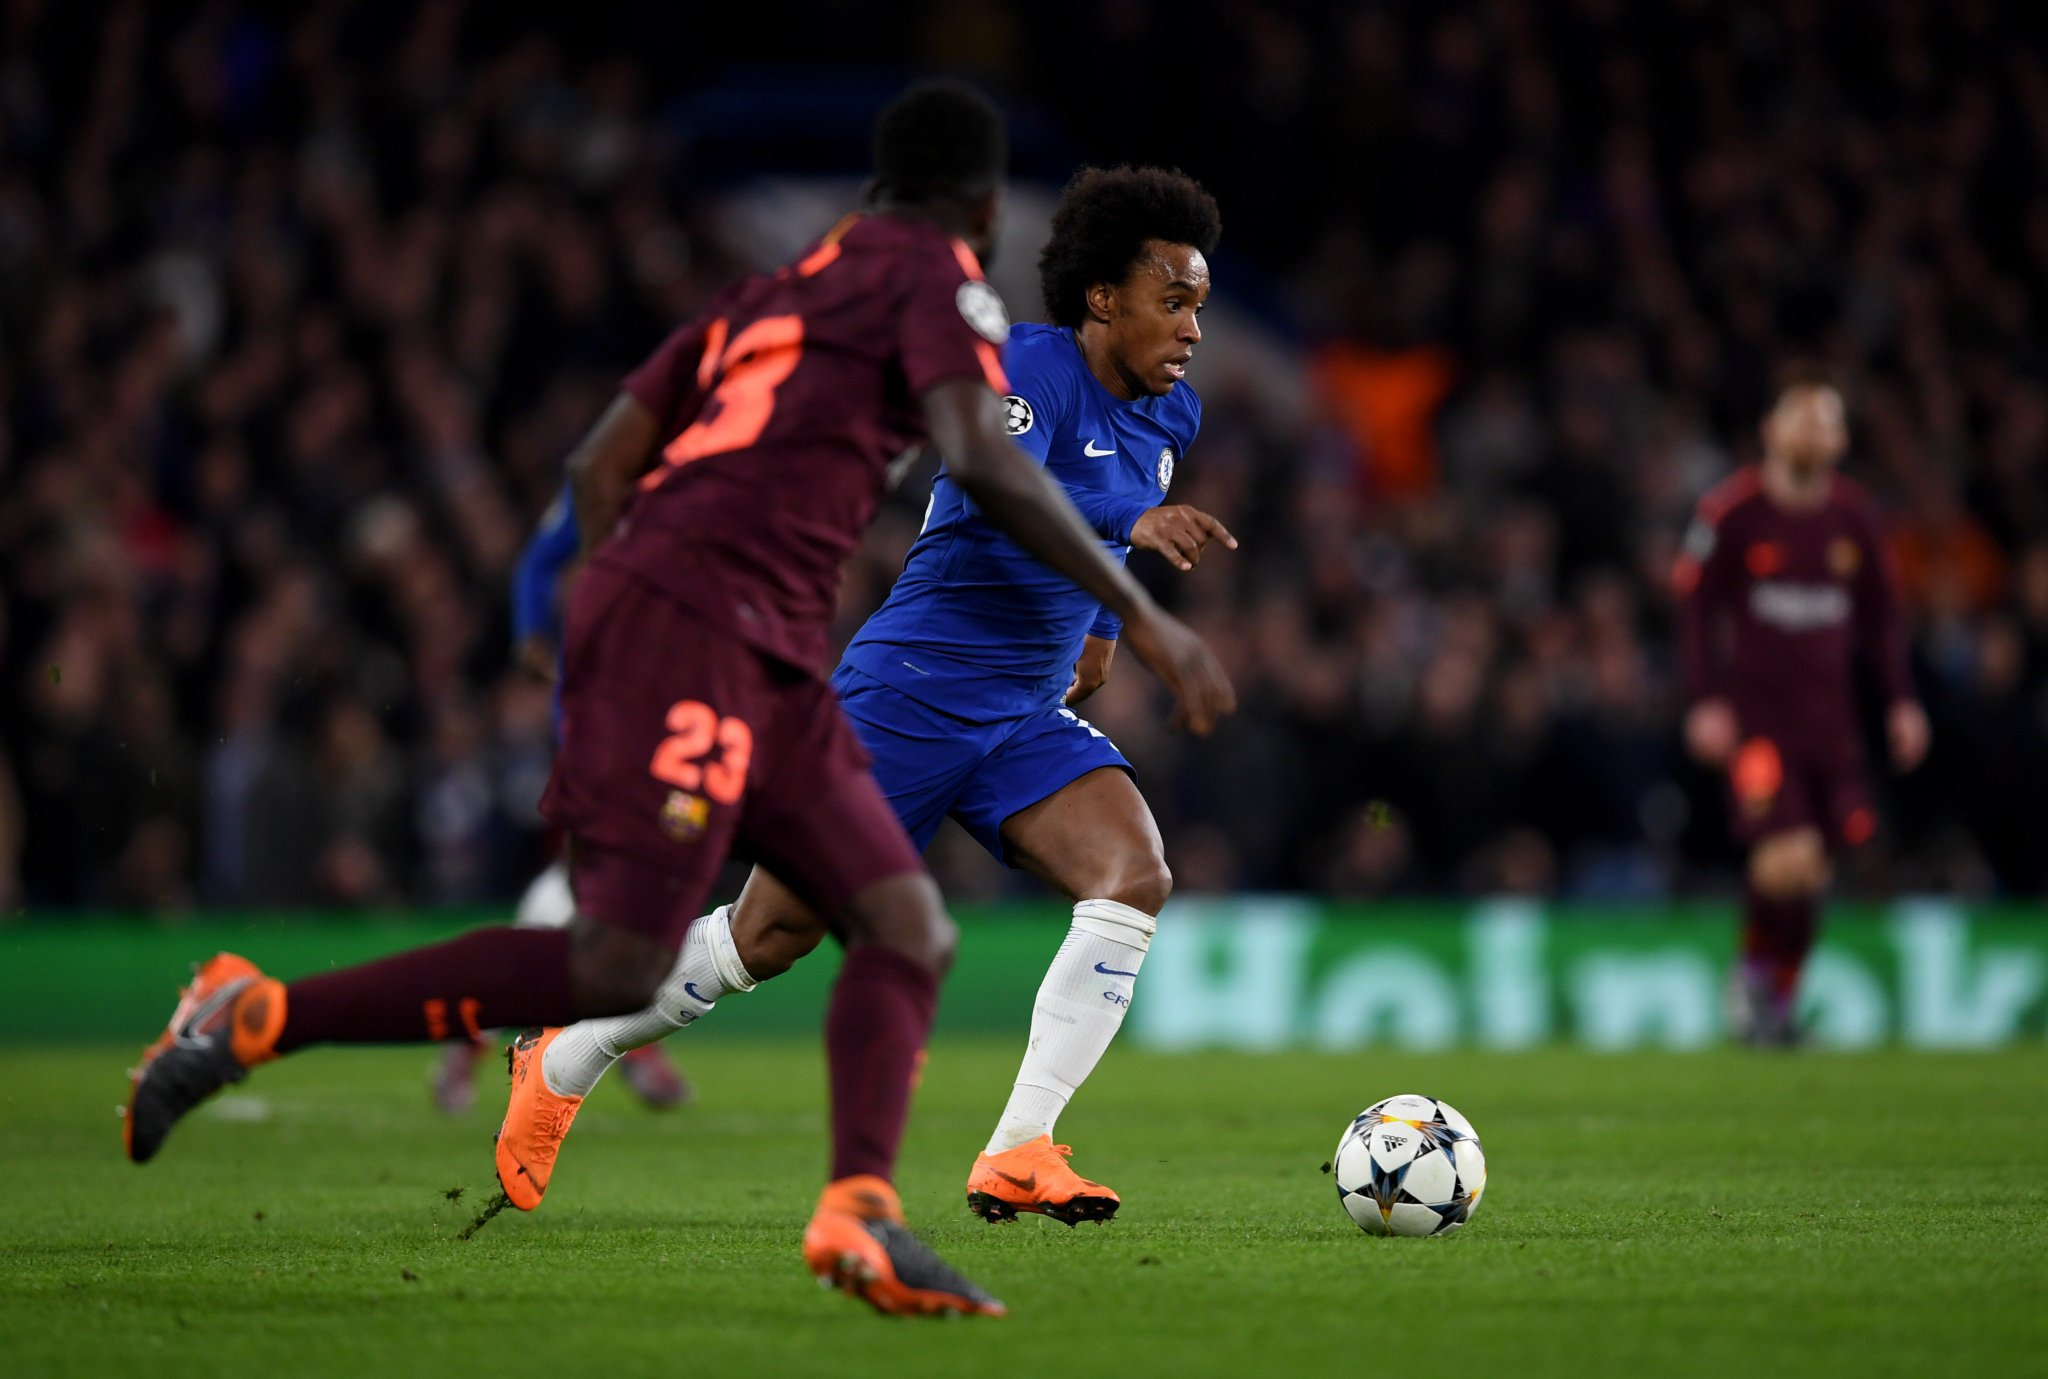 Chelsea FC vs FC Barcelona Highlights & Goals Video - Champions League - 20 February 2108